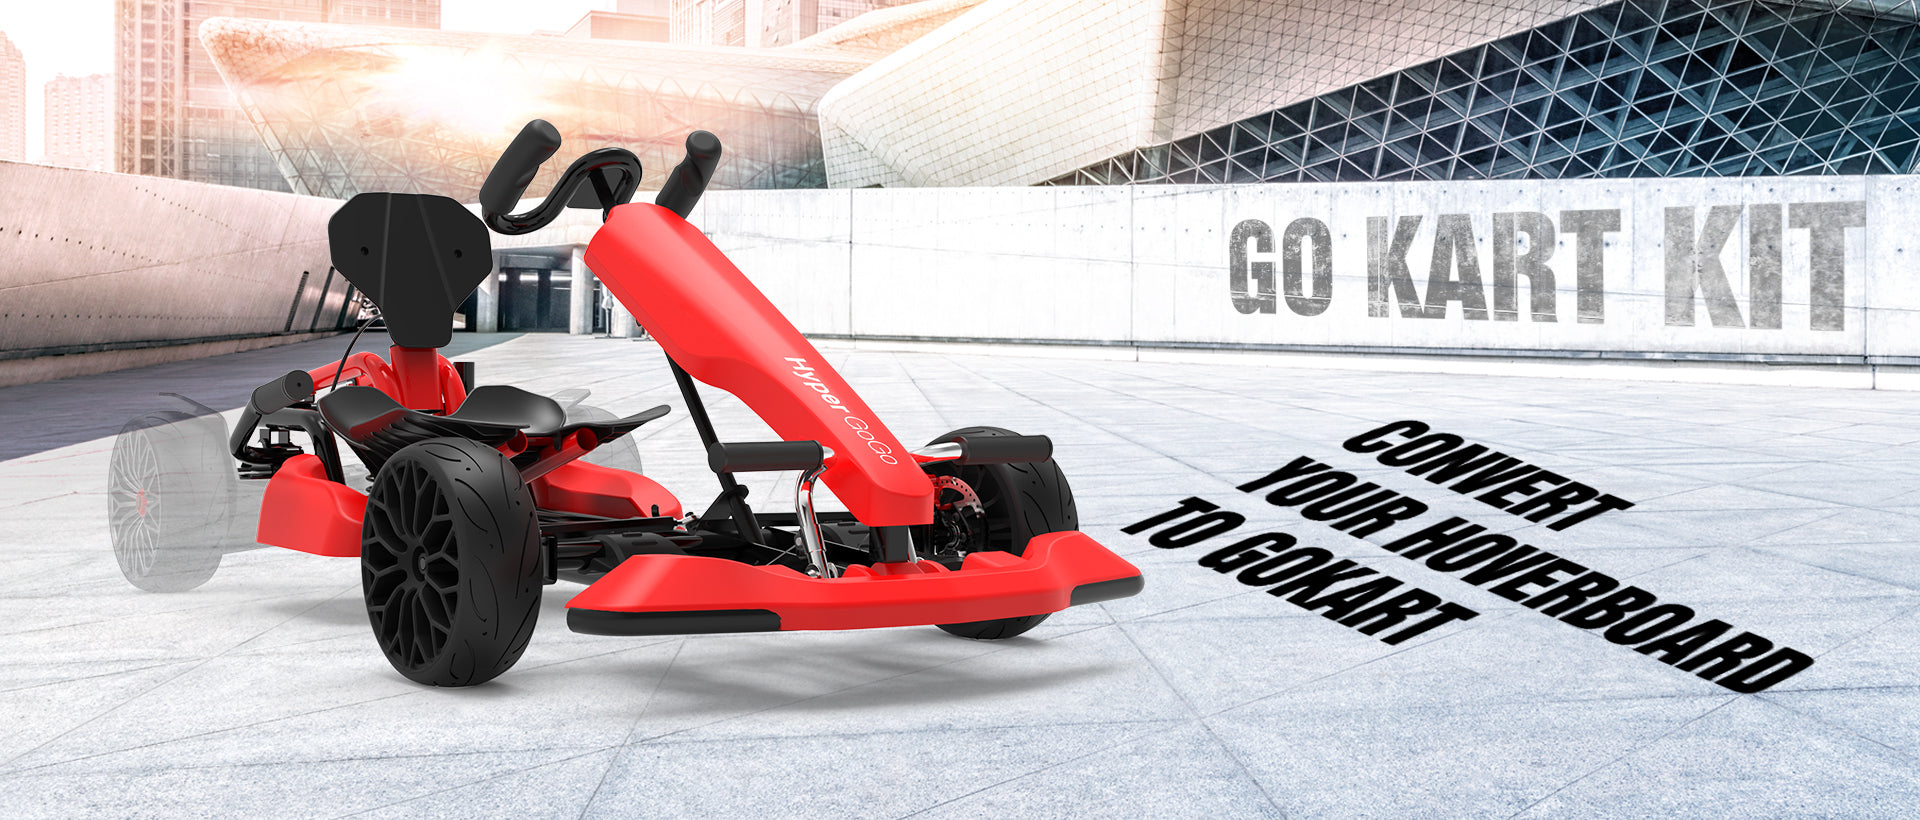 Go Kart Kit - Convert Your Hoverboard to Gokart